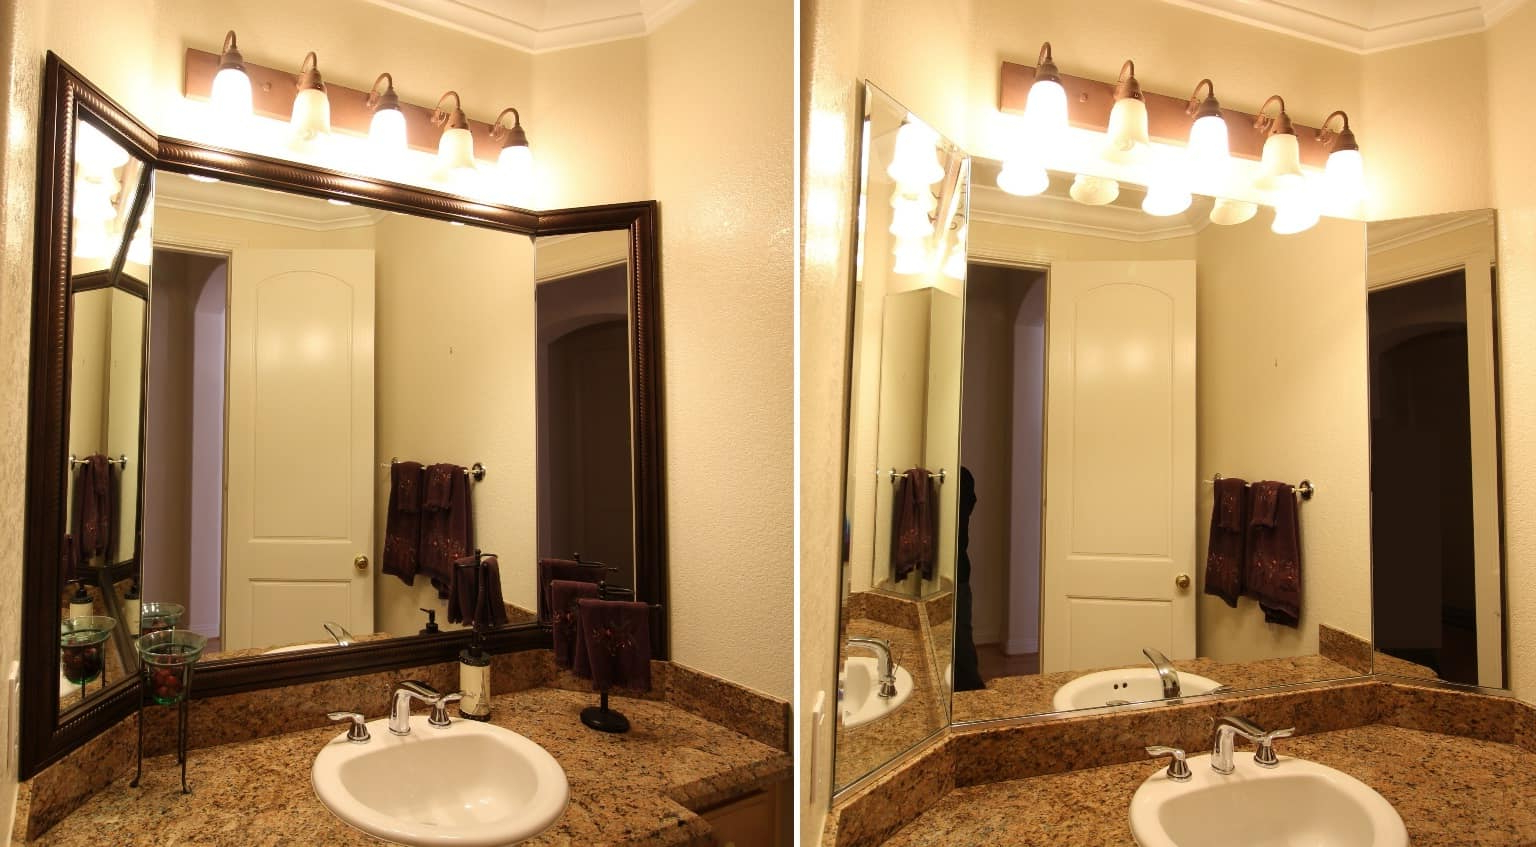 Tri Fold Bathroom Wall Mirrors With Newest Designs Daily Mirror Vanity And For Living Lighting Frame (View 20 of 20)